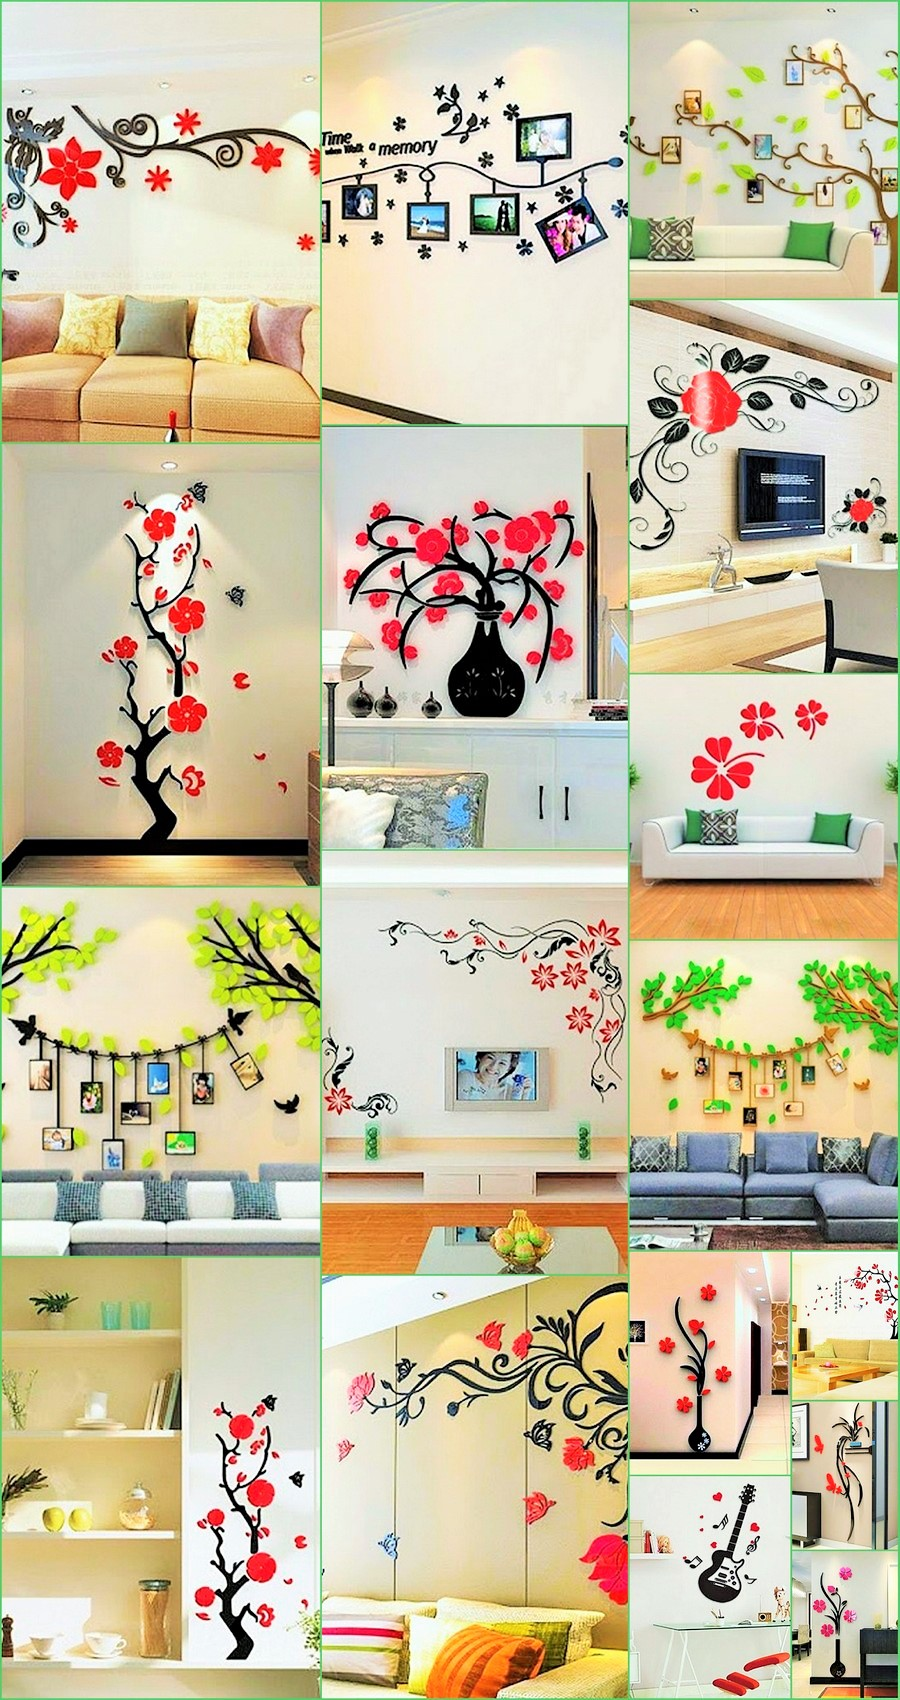 Wall-Sticker-Design and Ideas (2)